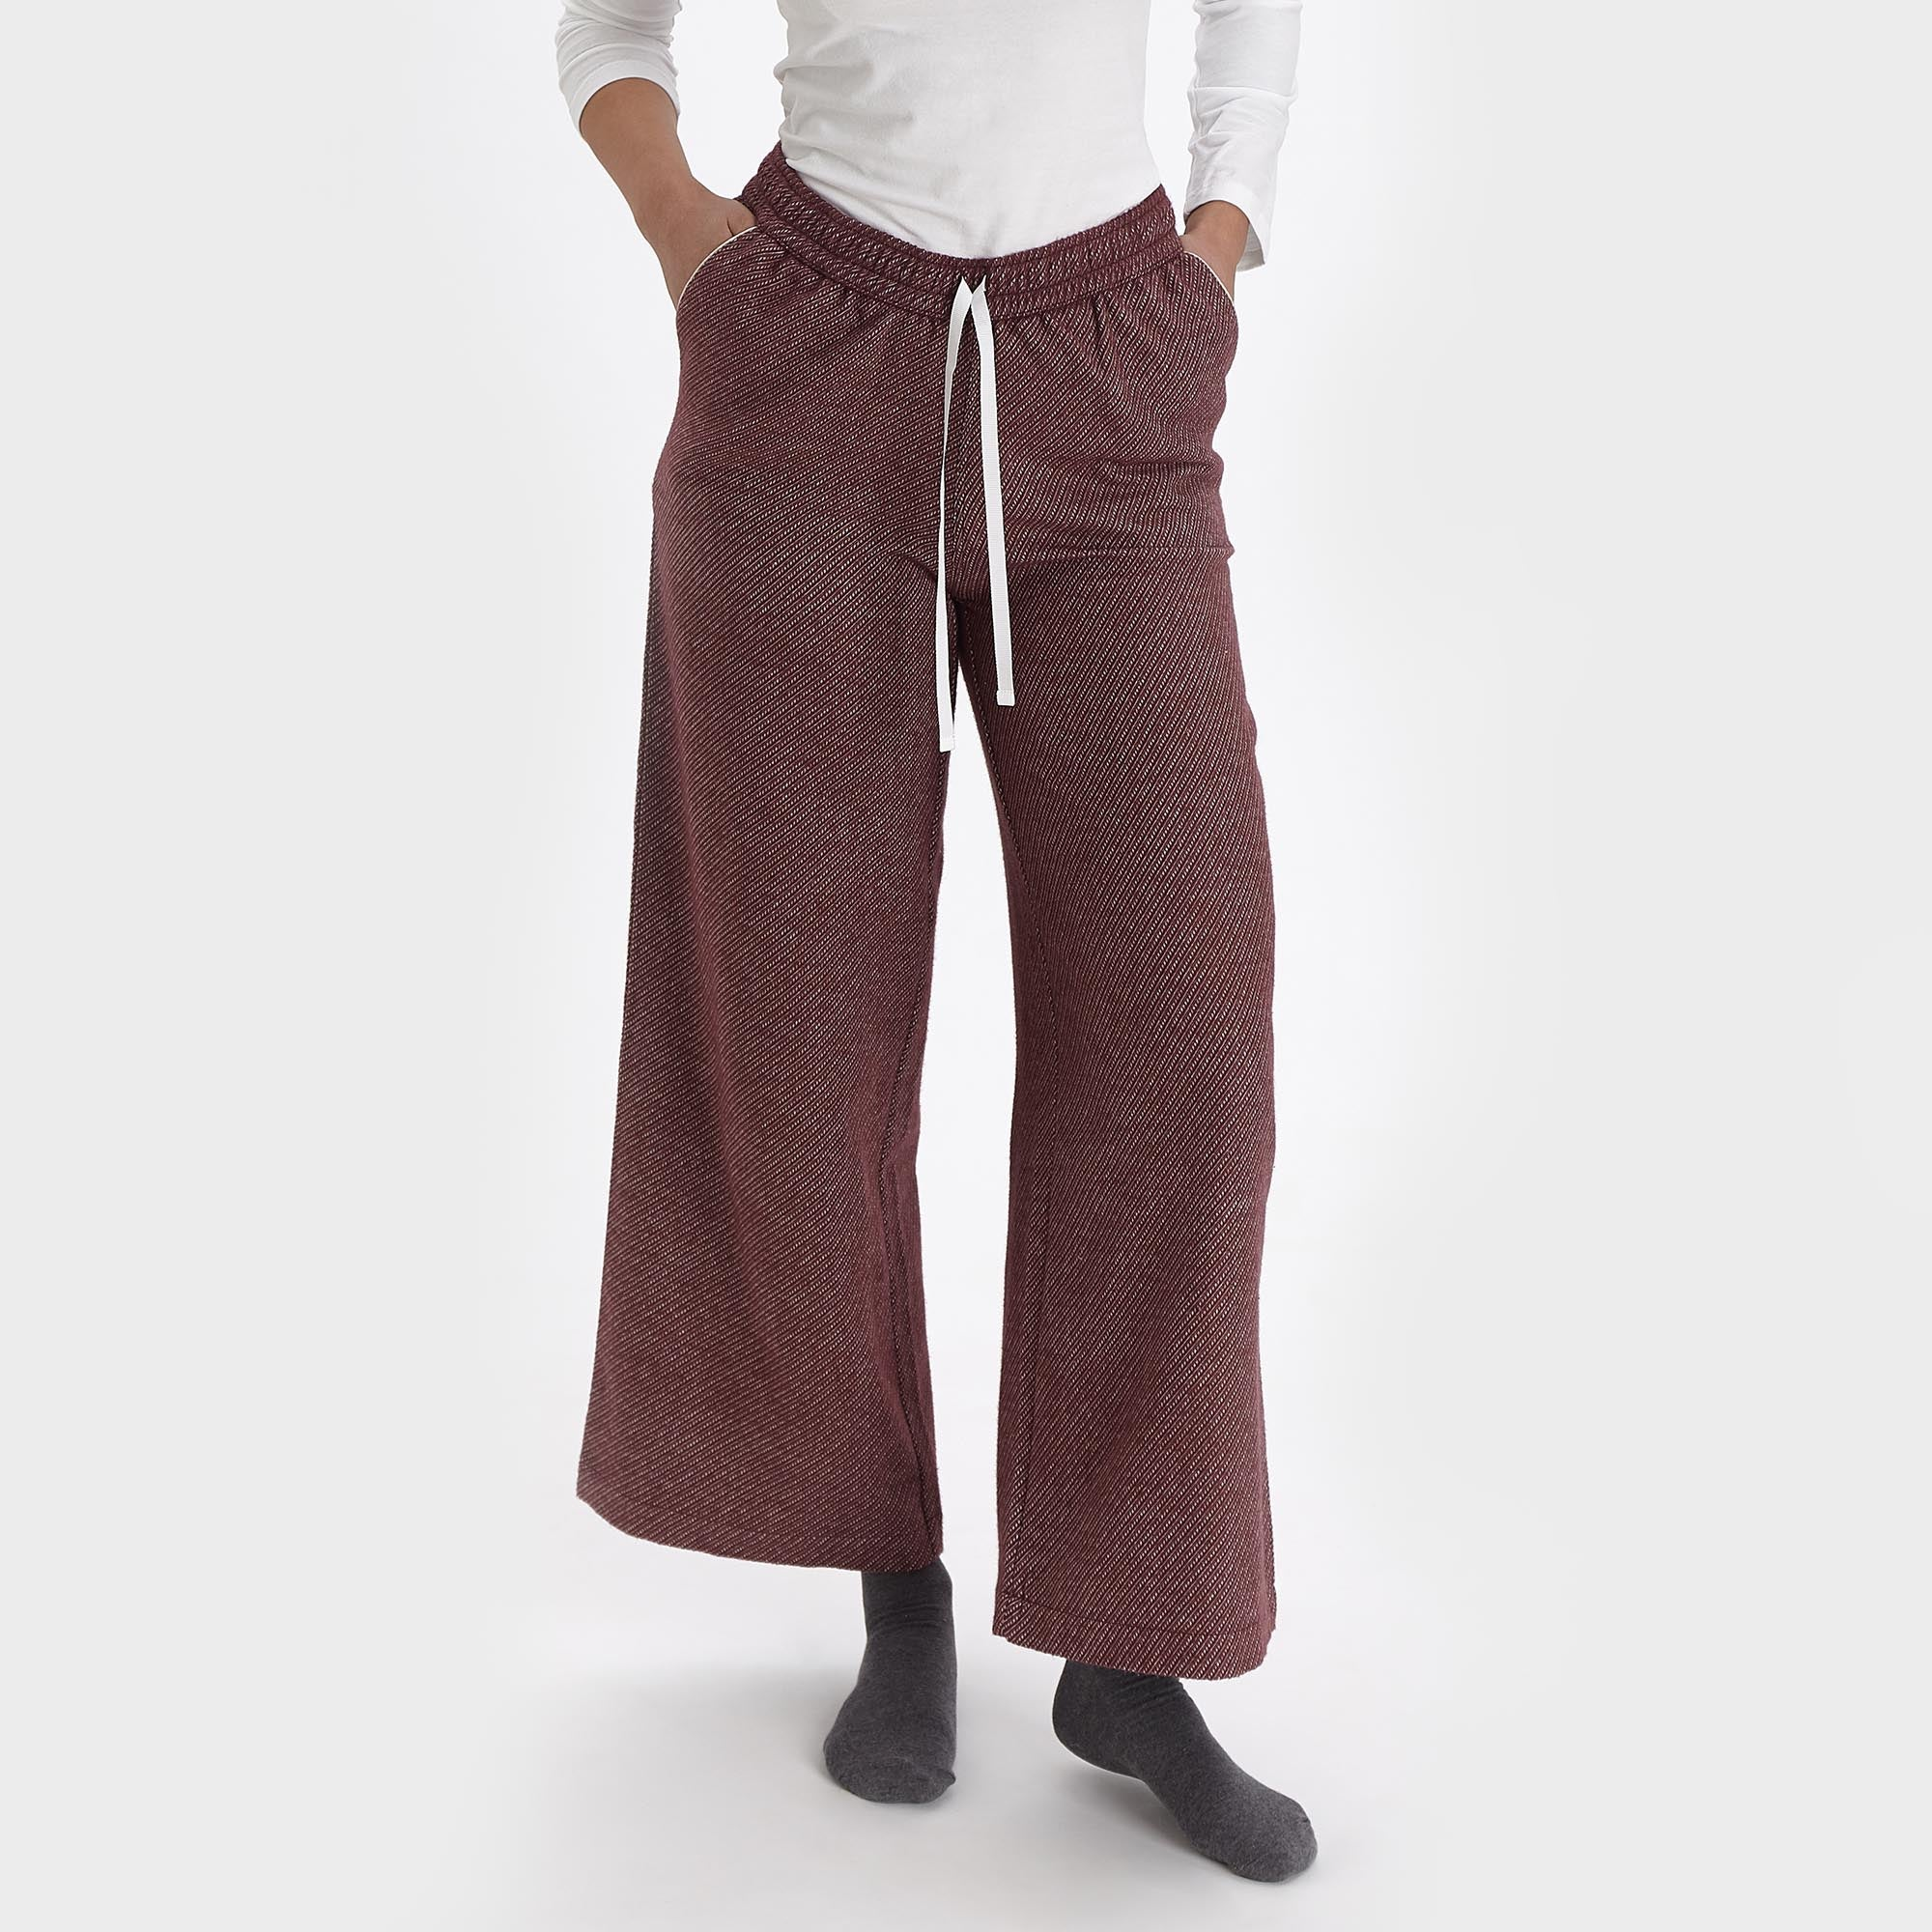 Coja Flannel Pyjama Pants [Bordeaux red/Natural white]